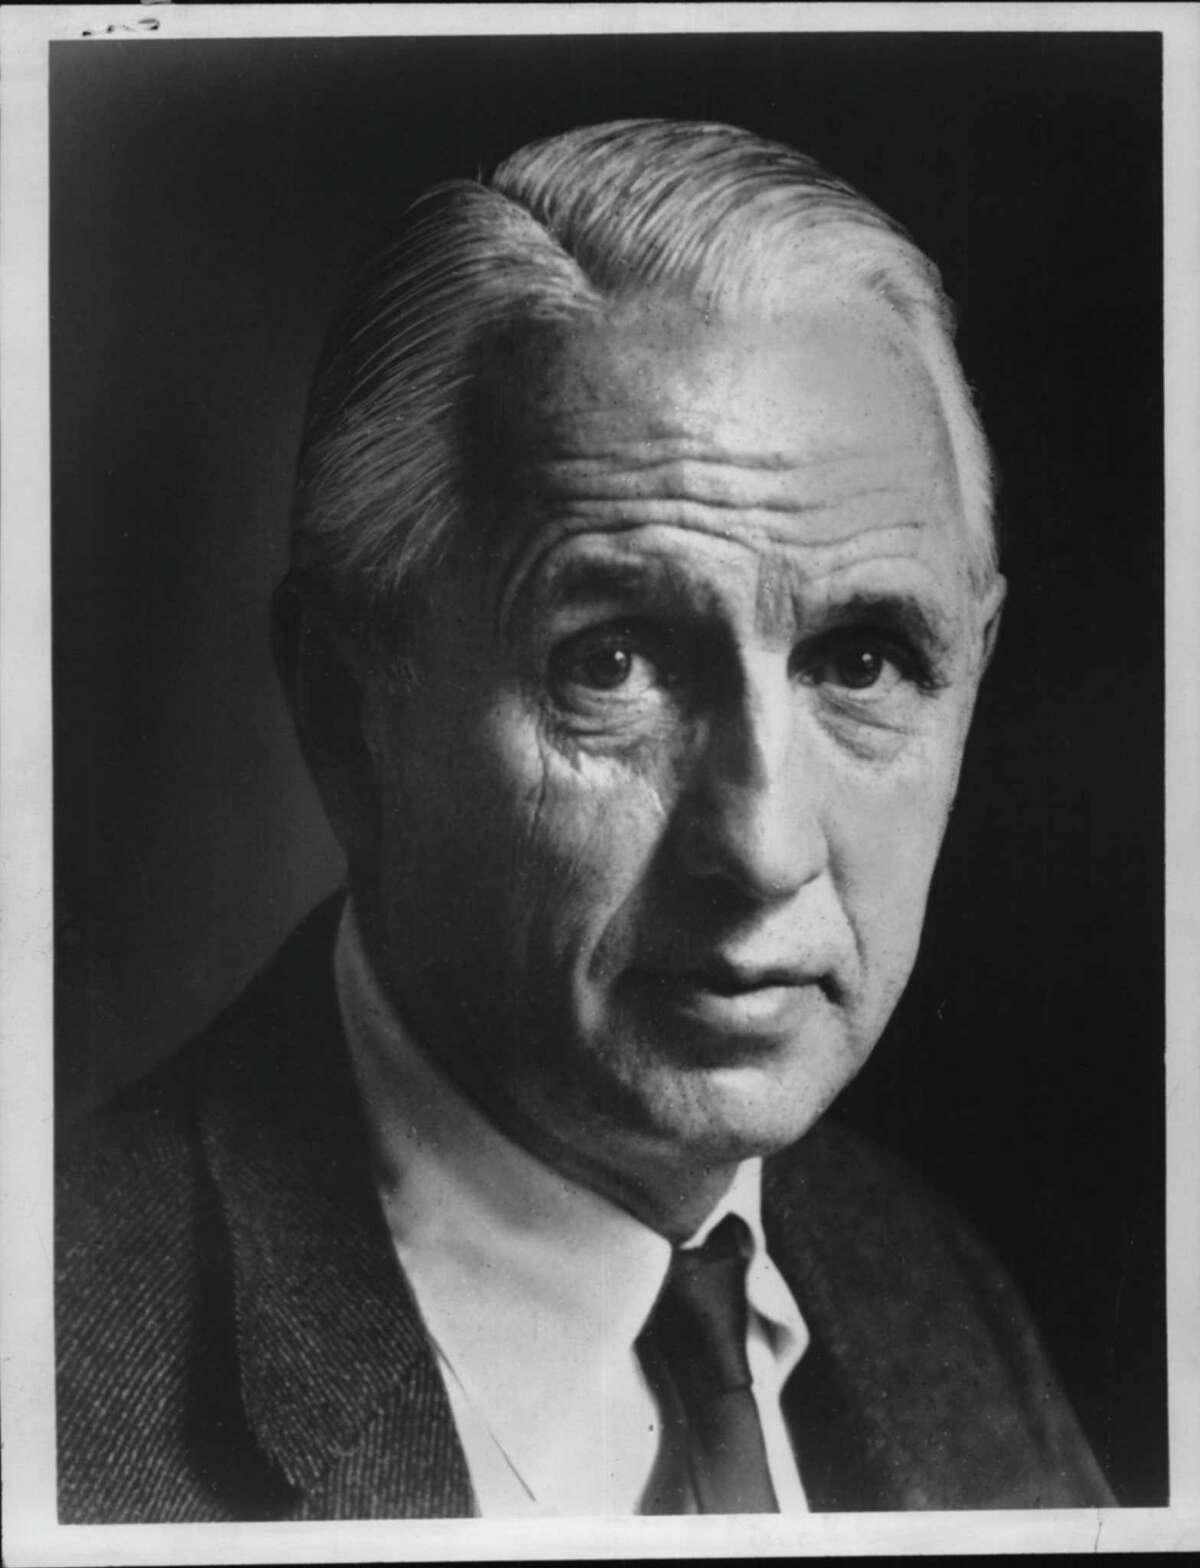 Dr. Everett R. Clinchy, New York. March 14, 1972 (Times Union Archive)